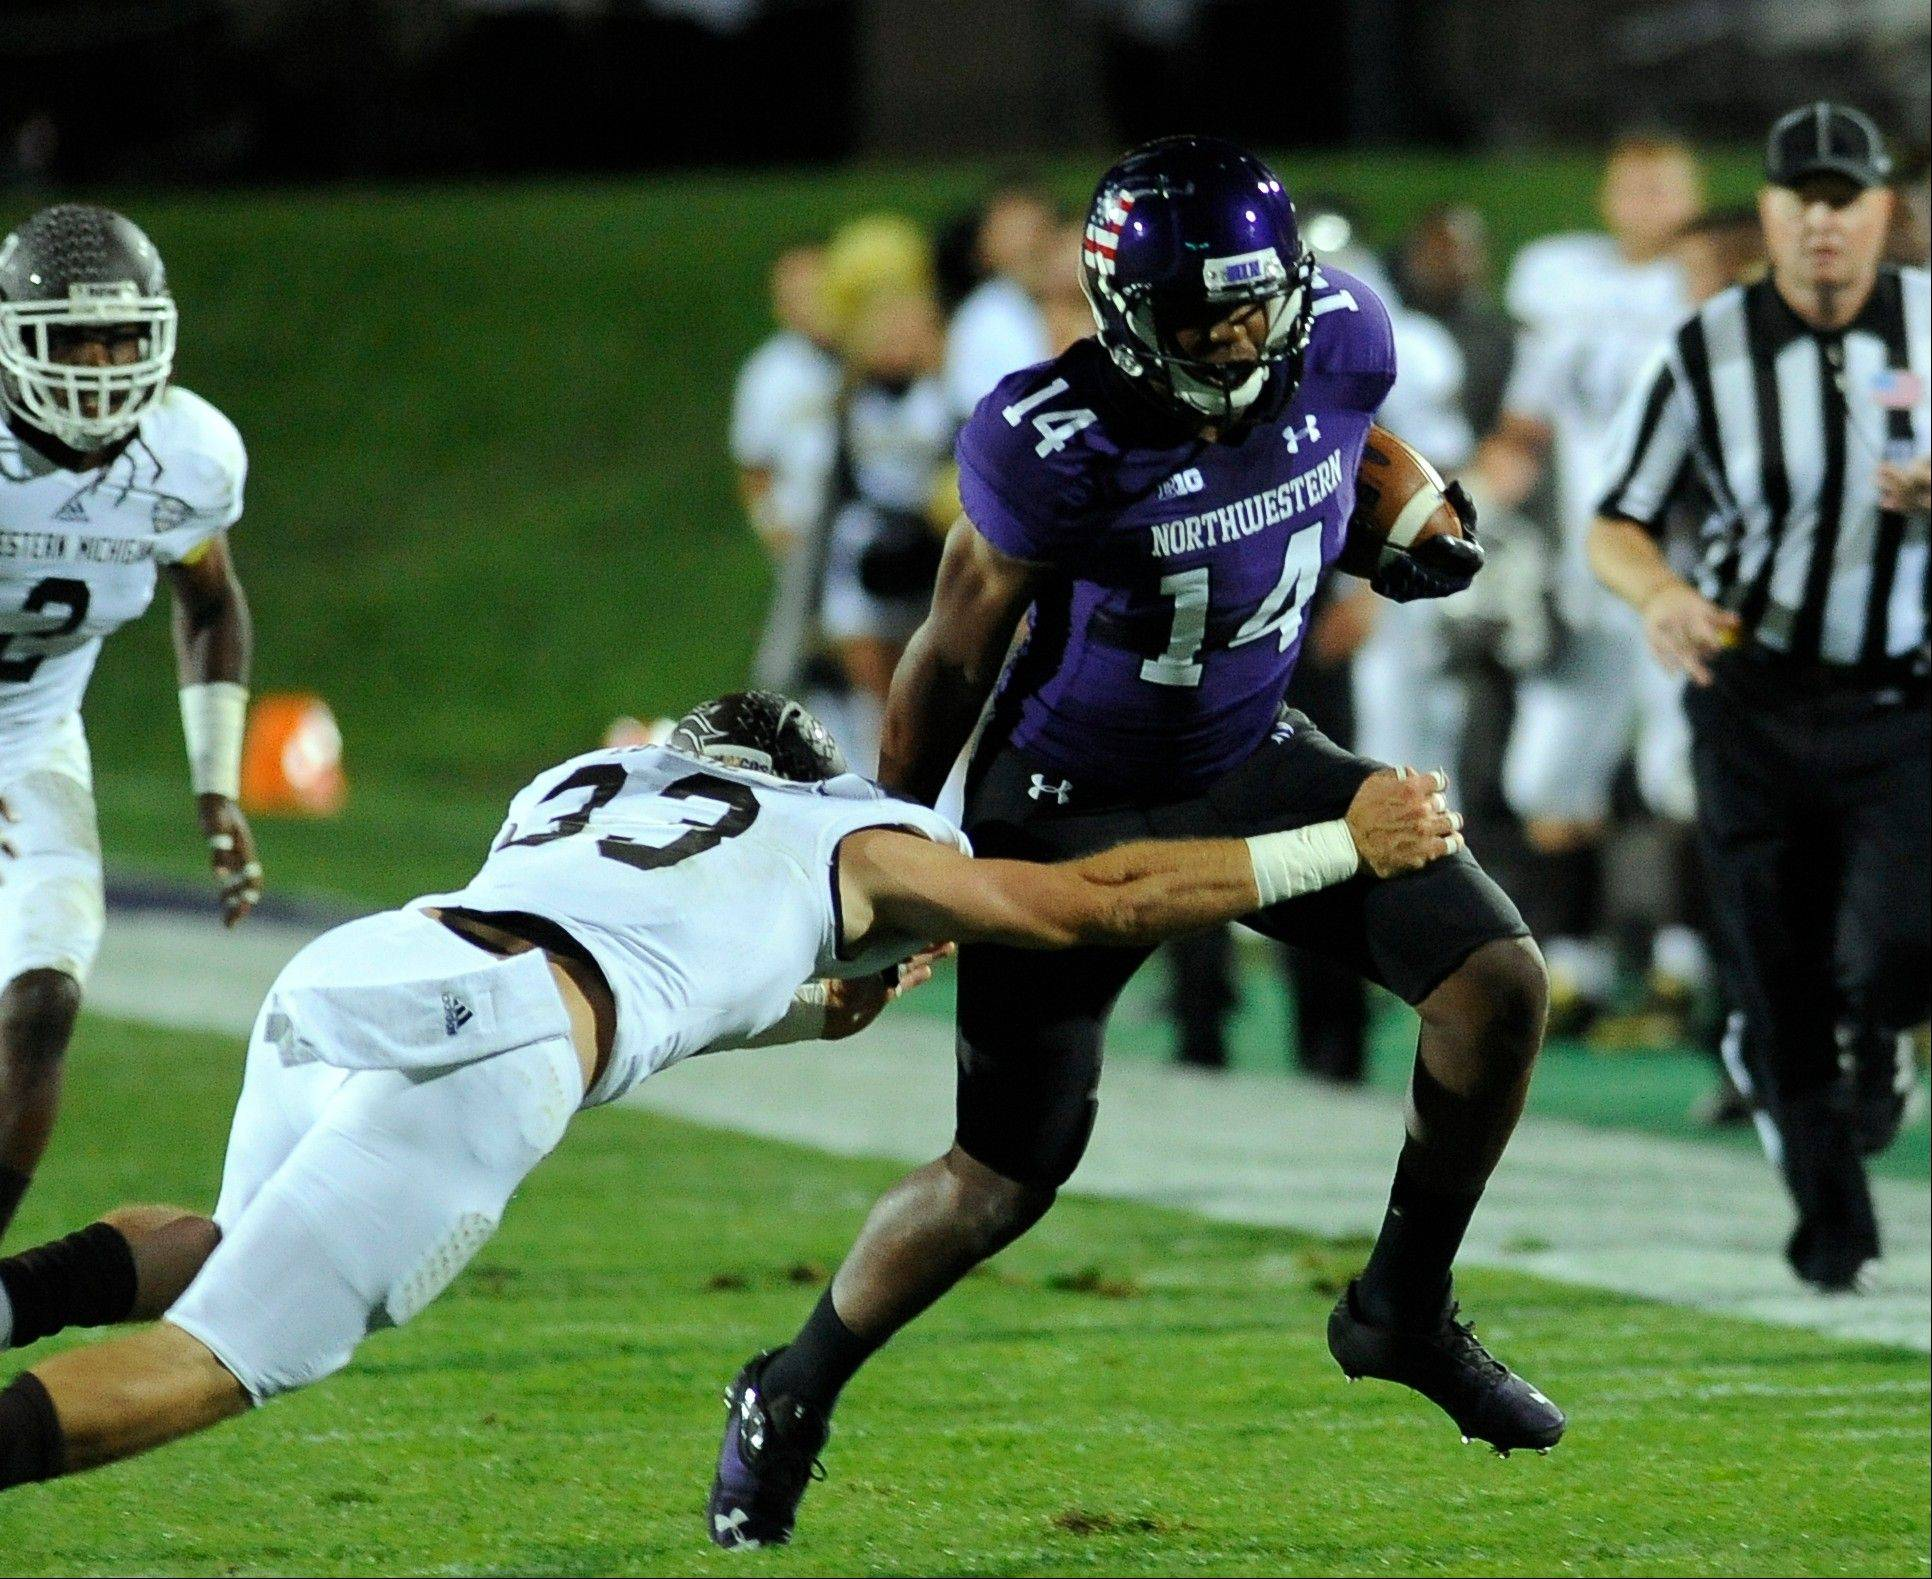 Northwestern's Christian Jones (14) runs against Western Michigan's Justin Currie(33) during the first quarter of an NCAA college football game in Evanston, Ill., Saturday, Sept. 14, 2013.